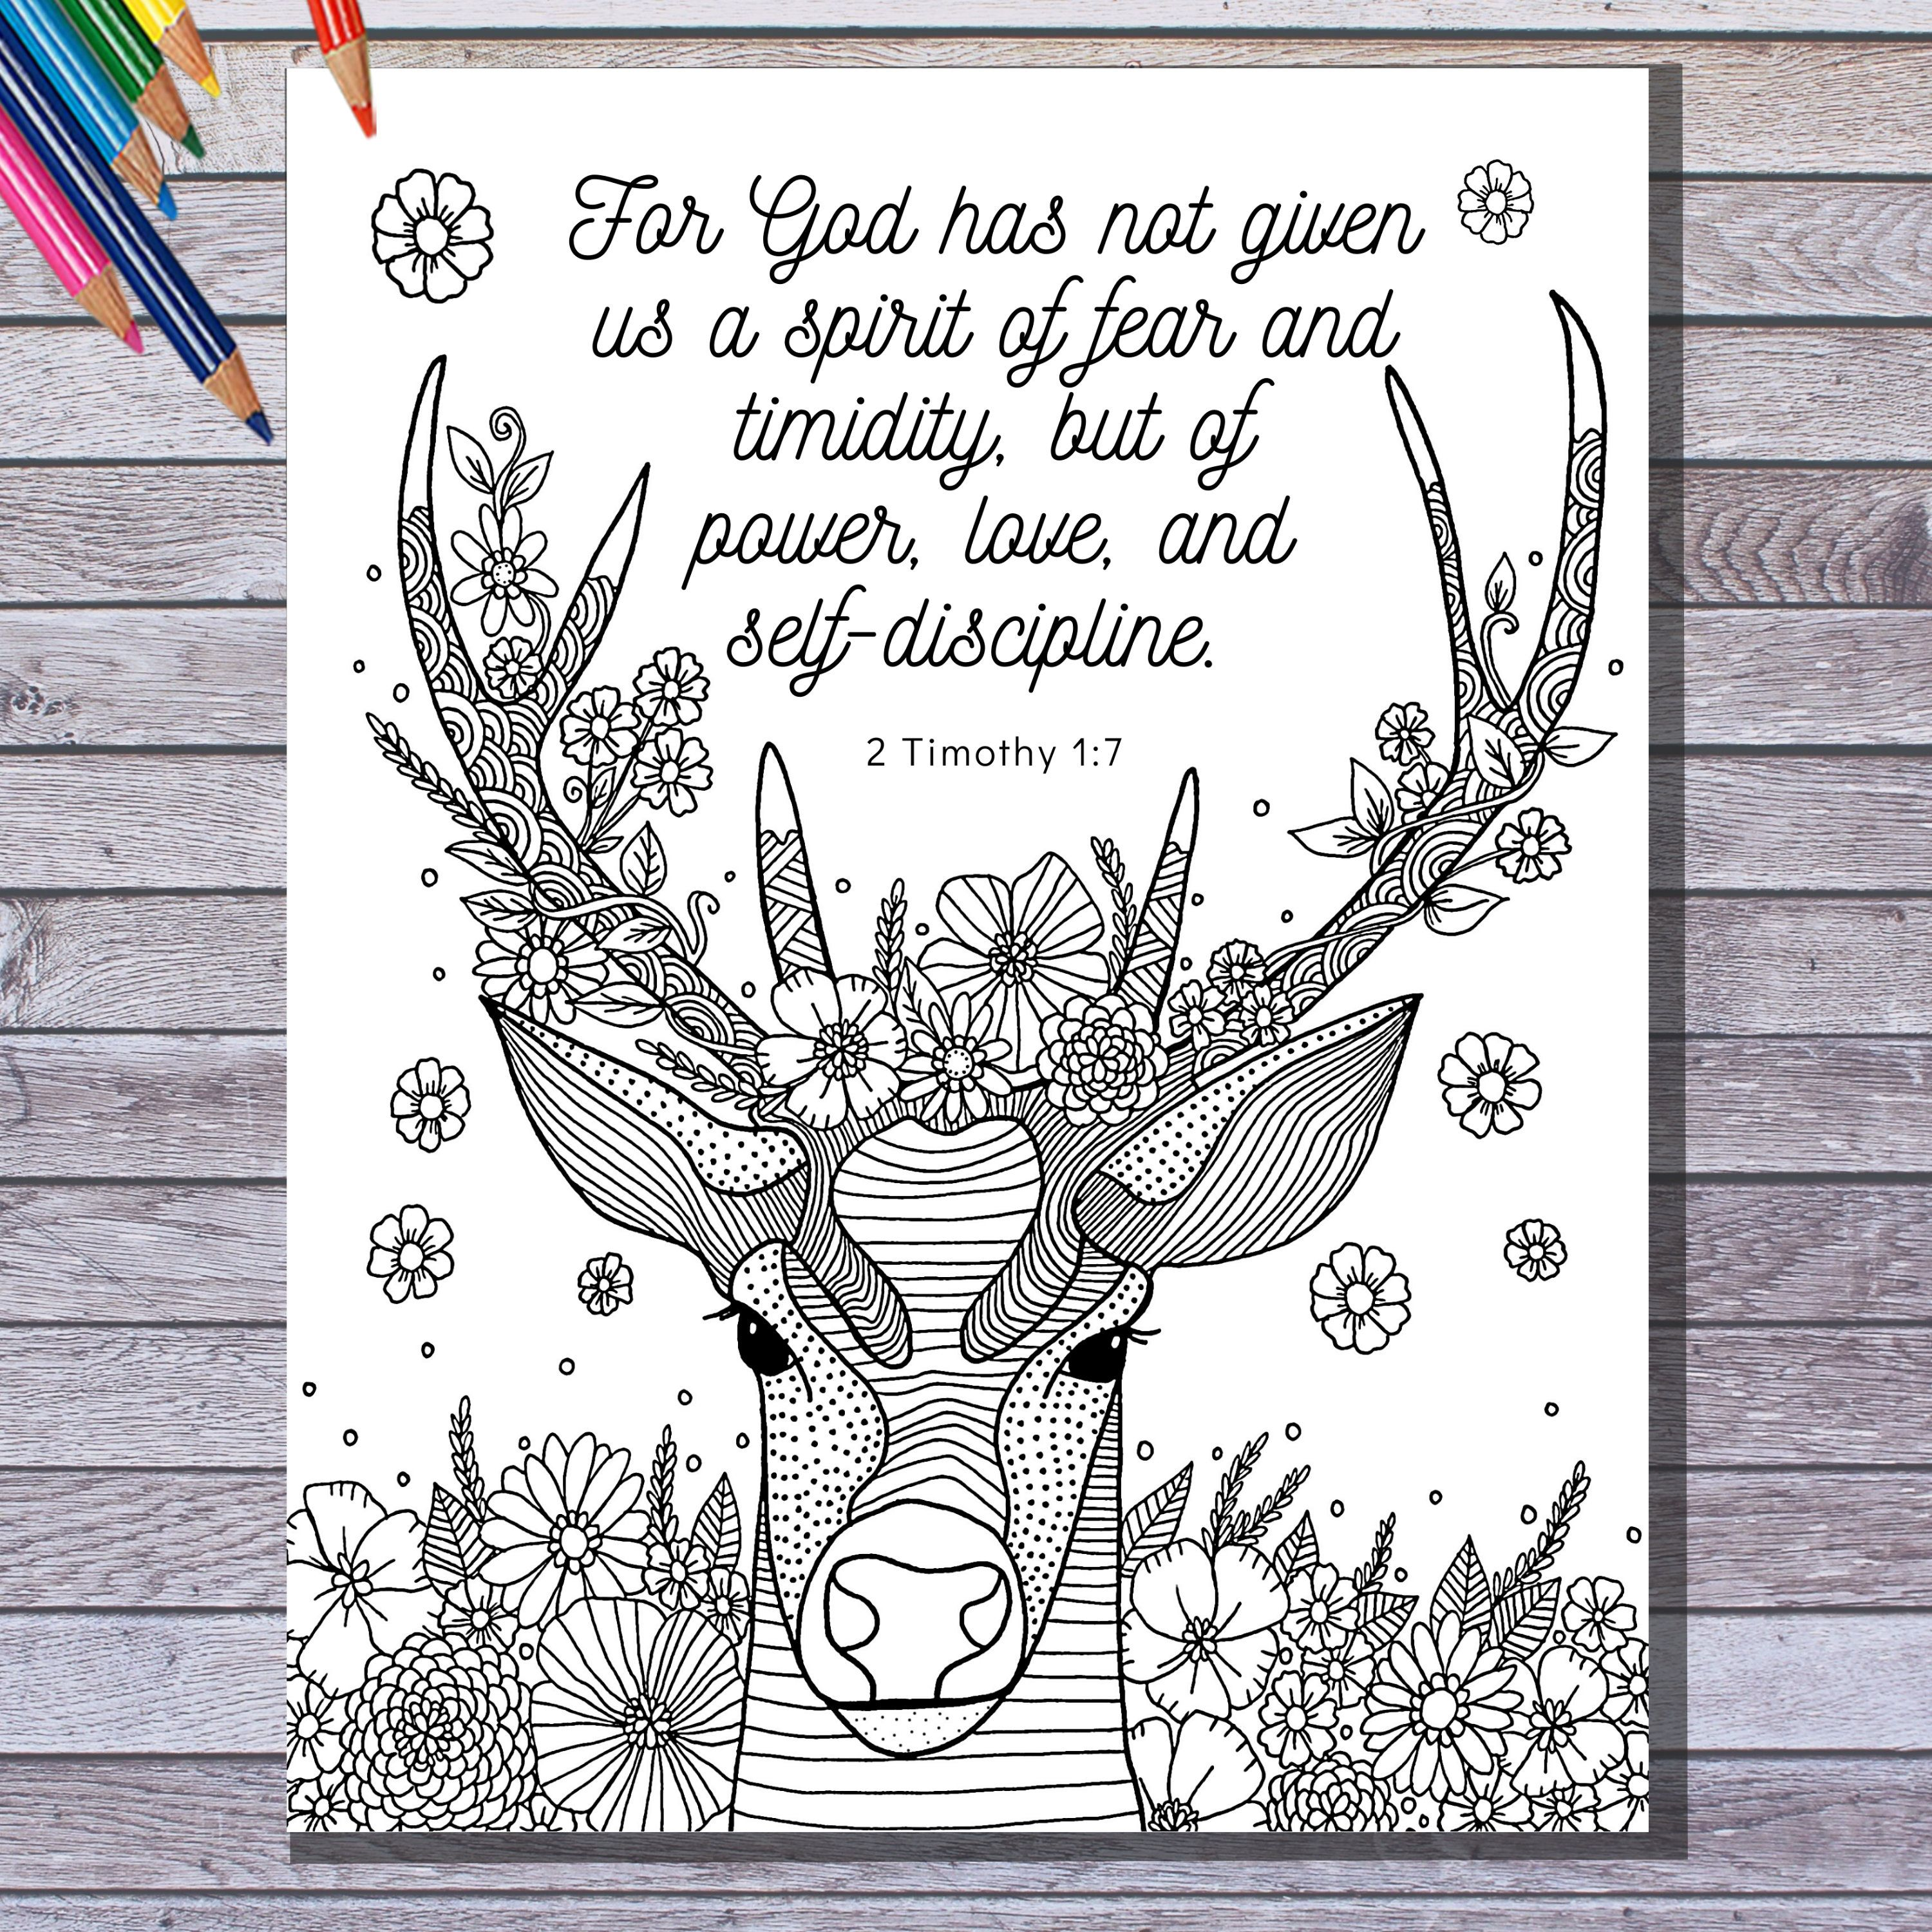 Printable Bible Verse Coloring Page Instant Download 2 Etsy Bible Verse Coloring Page Bible Verse Coloring Coloring Pages